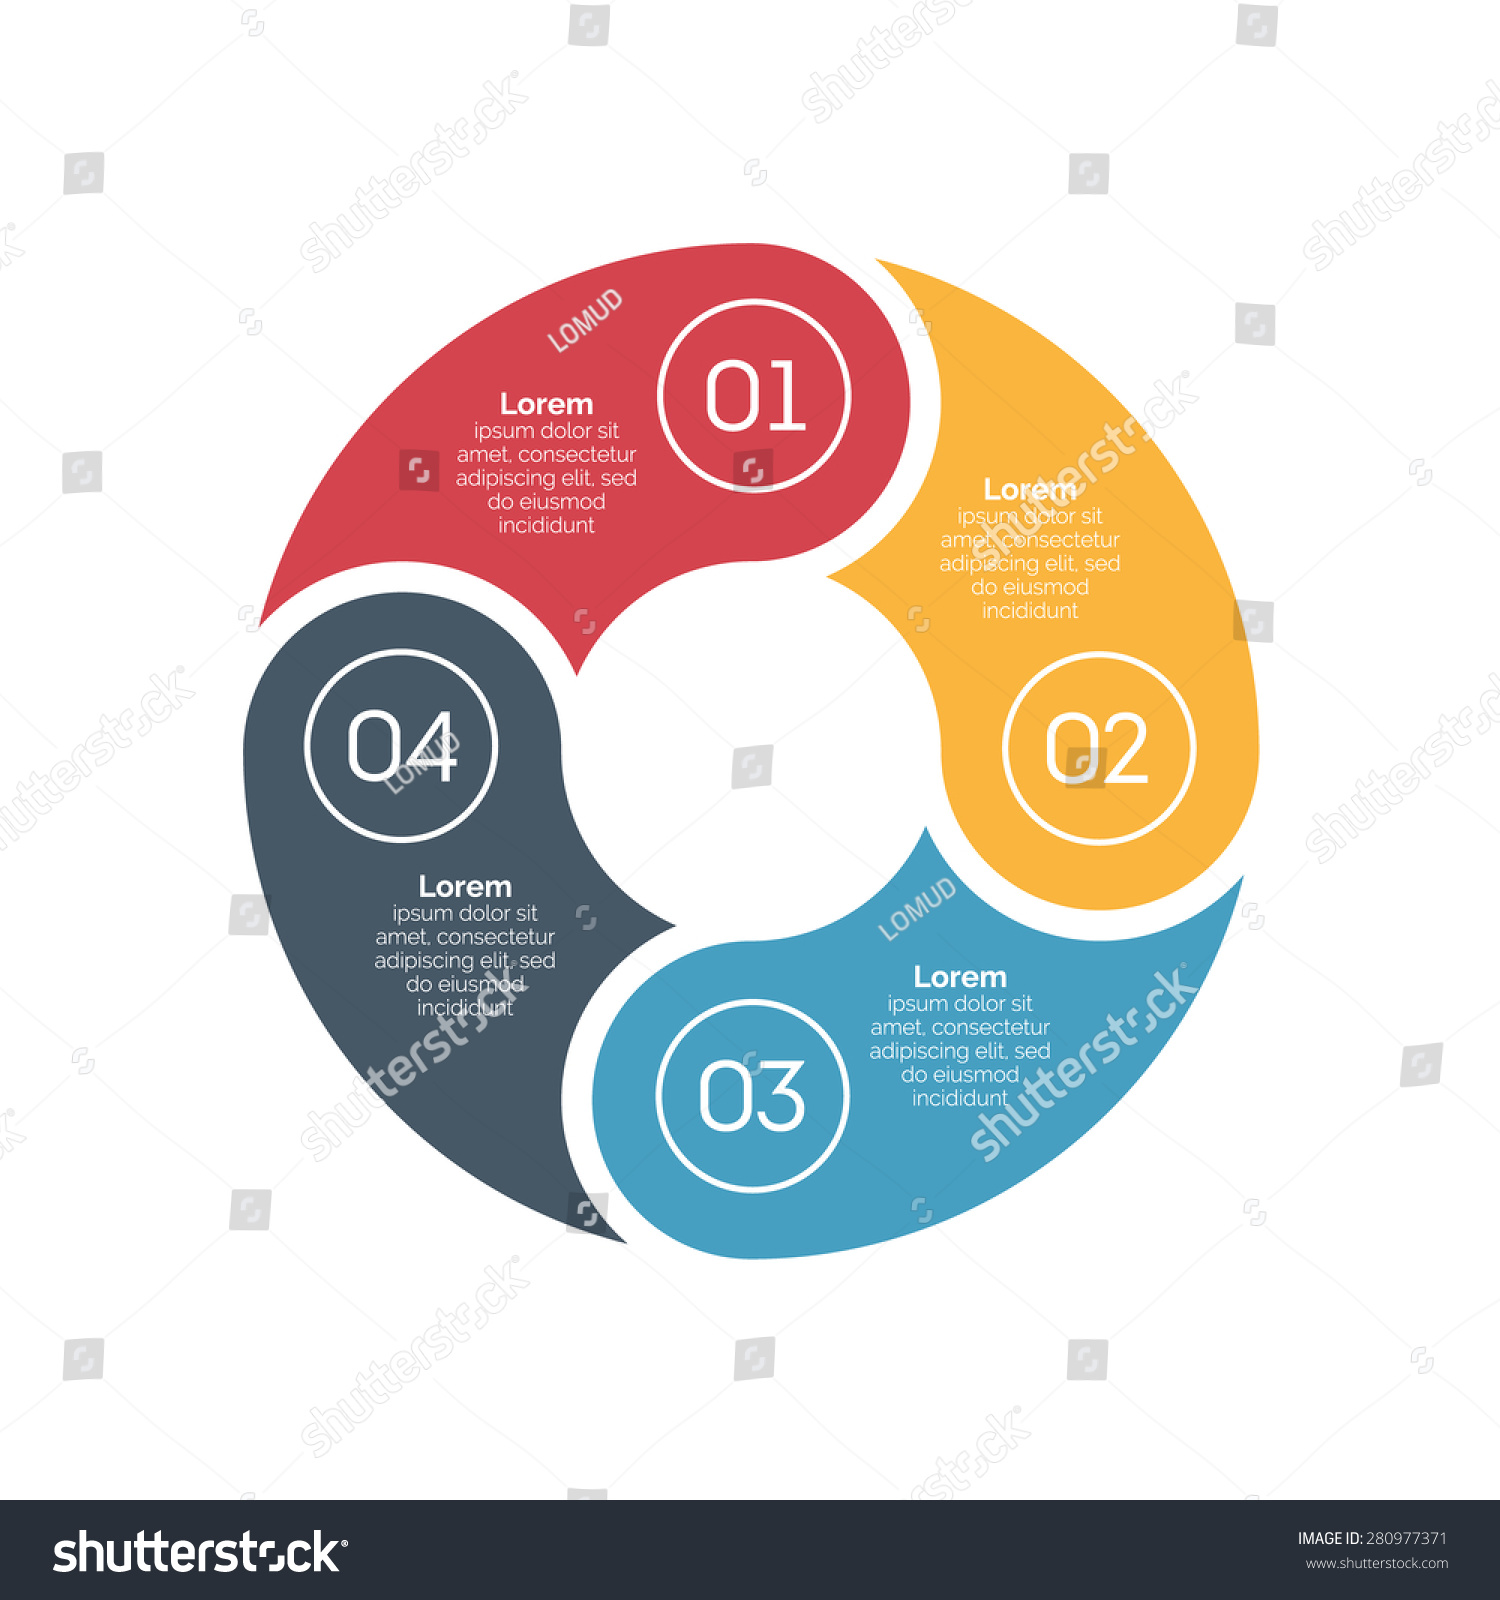 vector circle infographic design element template stock vector 280977371 shutterstock. Black Bedroom Furniture Sets. Home Design Ideas